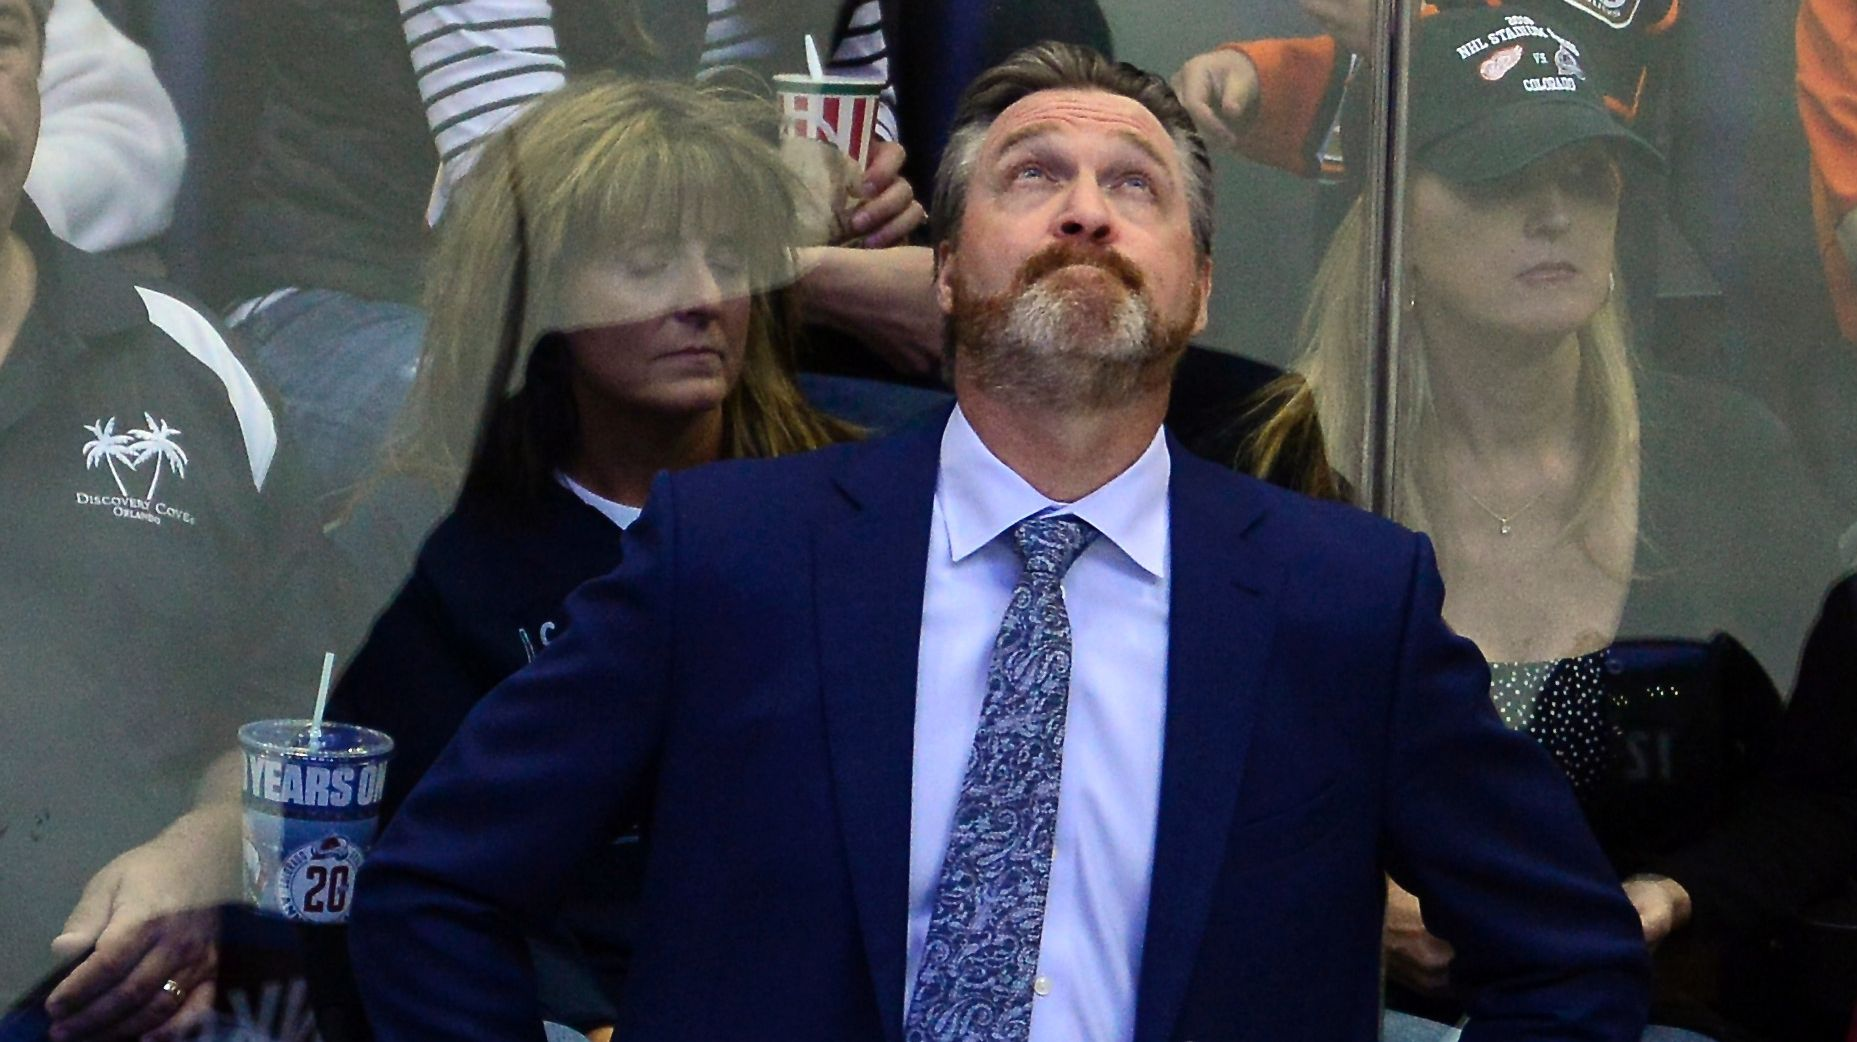 https://secure.espncdn.com/combiner/i?img=/media/motion/2016/0811/dm_160811_nhl_patrick_roy_quits_avs/dm_160811_nhl_patrick_roy_quits_avs.jpg